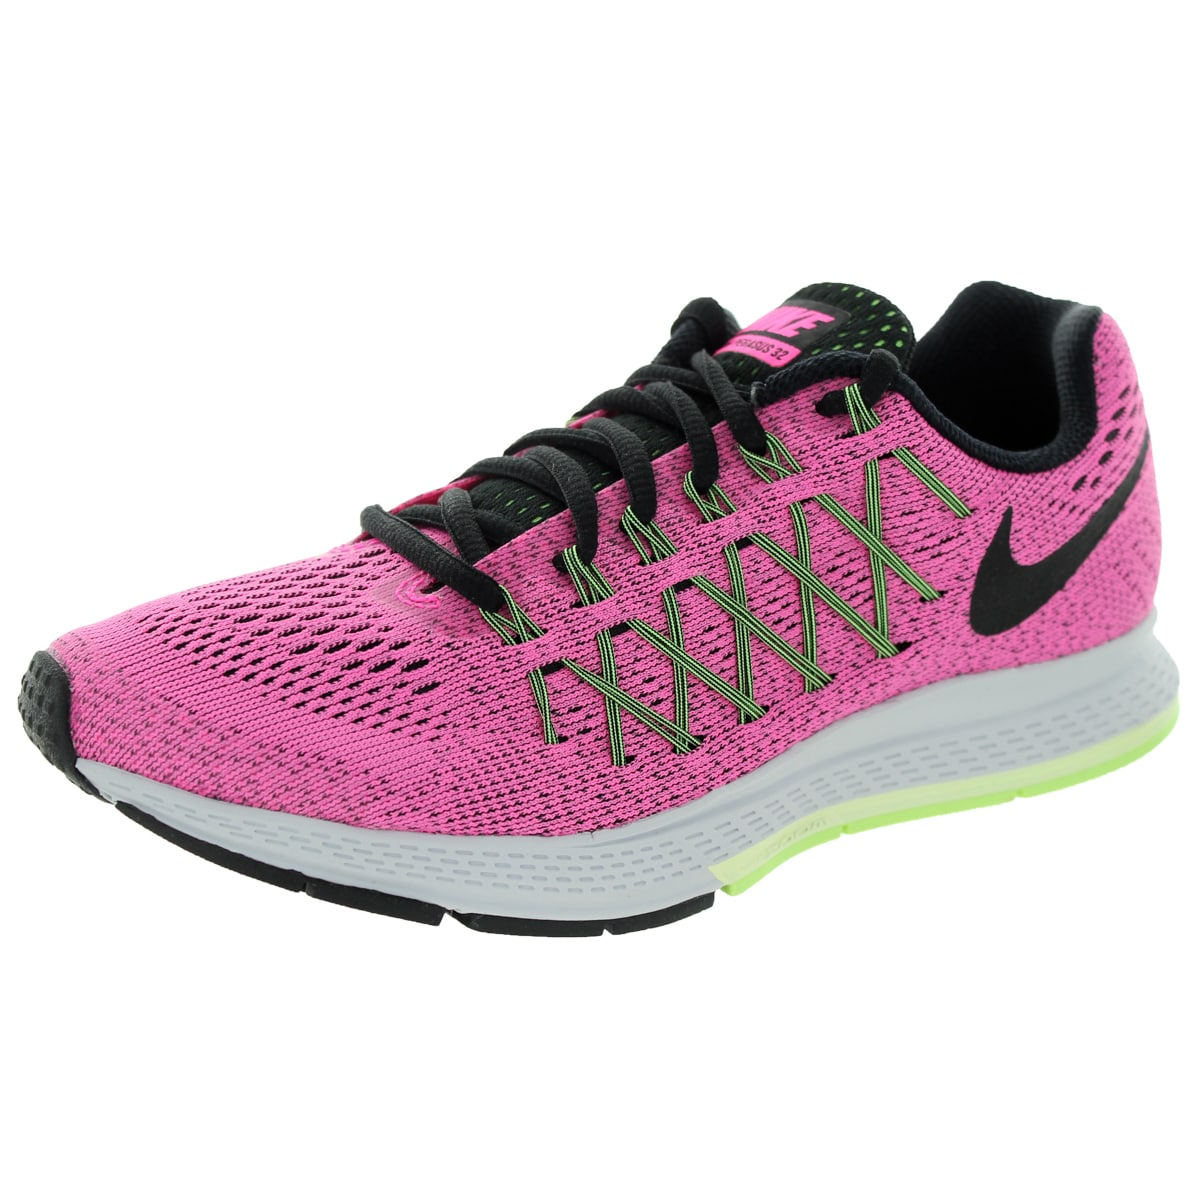 huge discount c0452 5fa9f Shop Nike Women s Air Zoom Pegasus 32 Pink Pow Black Brly Green Running  Shoe - Free Shipping Today - Overstock - 12321592